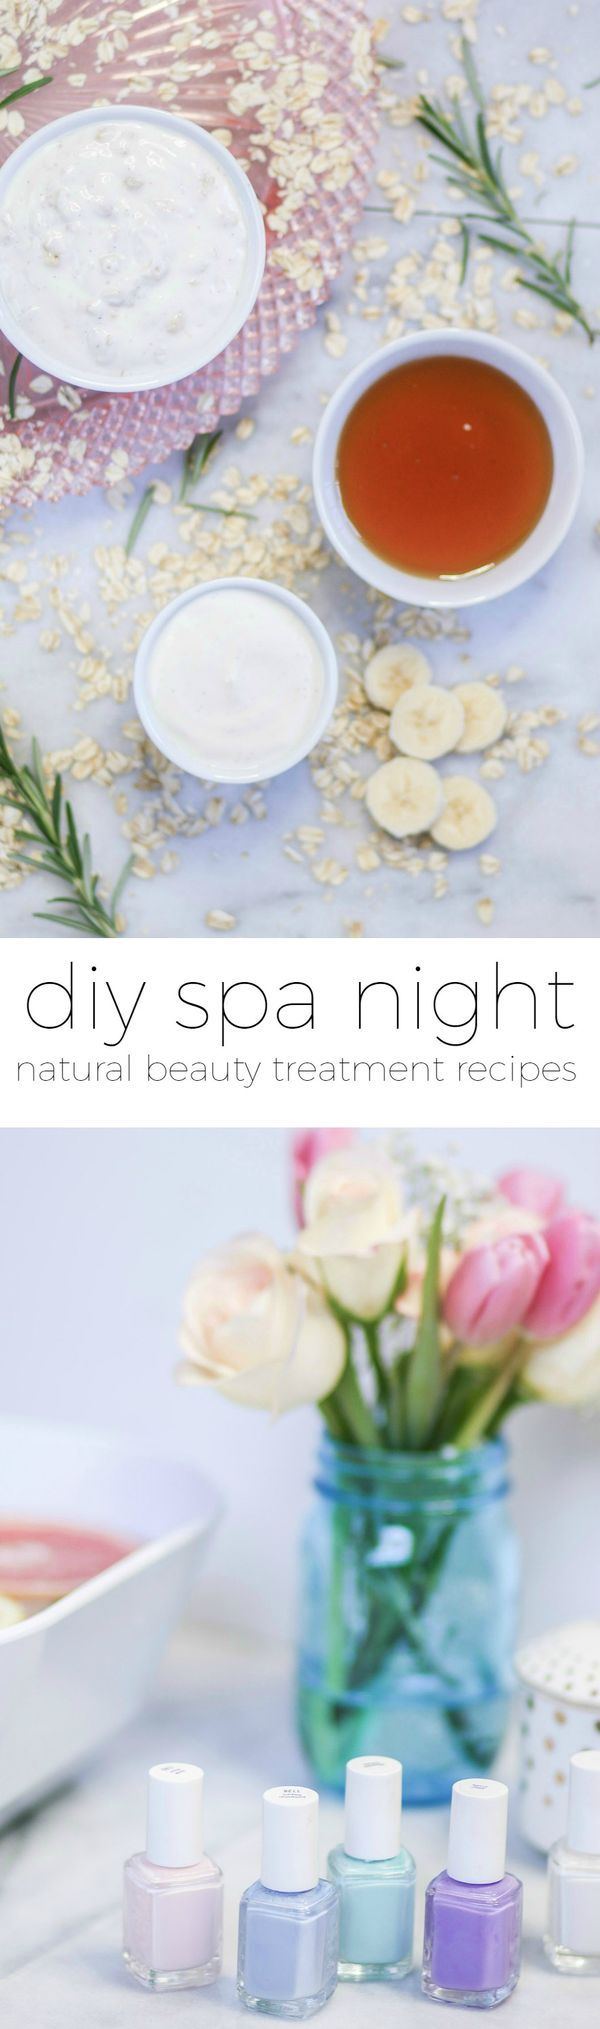 Learn how to create a luxurious DIY spa night at home with these easy DIY spa treatment recipes. You'll learn how to make a DIY lip scrub, moisturizing hair mask, soothing face mask, and chamomile hair rinse in this post. Plus, you'll learn how to easily whiten your teeth with @crest  3D Whitestrips! Click through this pin to see all of the DIY recipes and skin care tips! #crest #sponsored